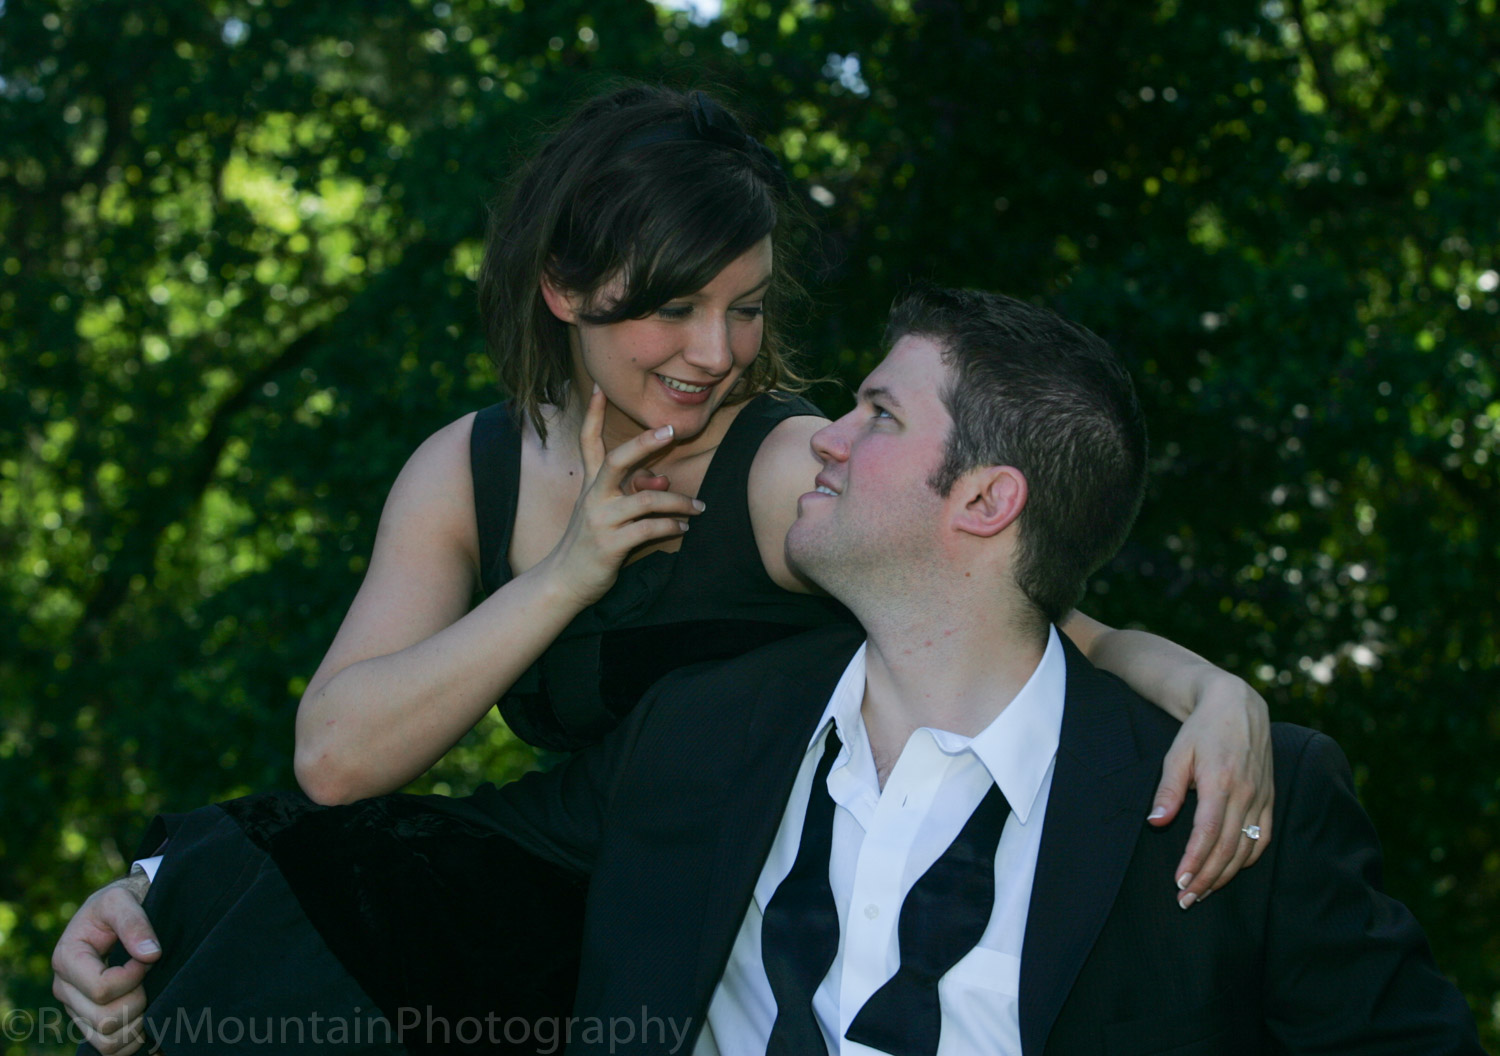 Couples & Engagements - 28